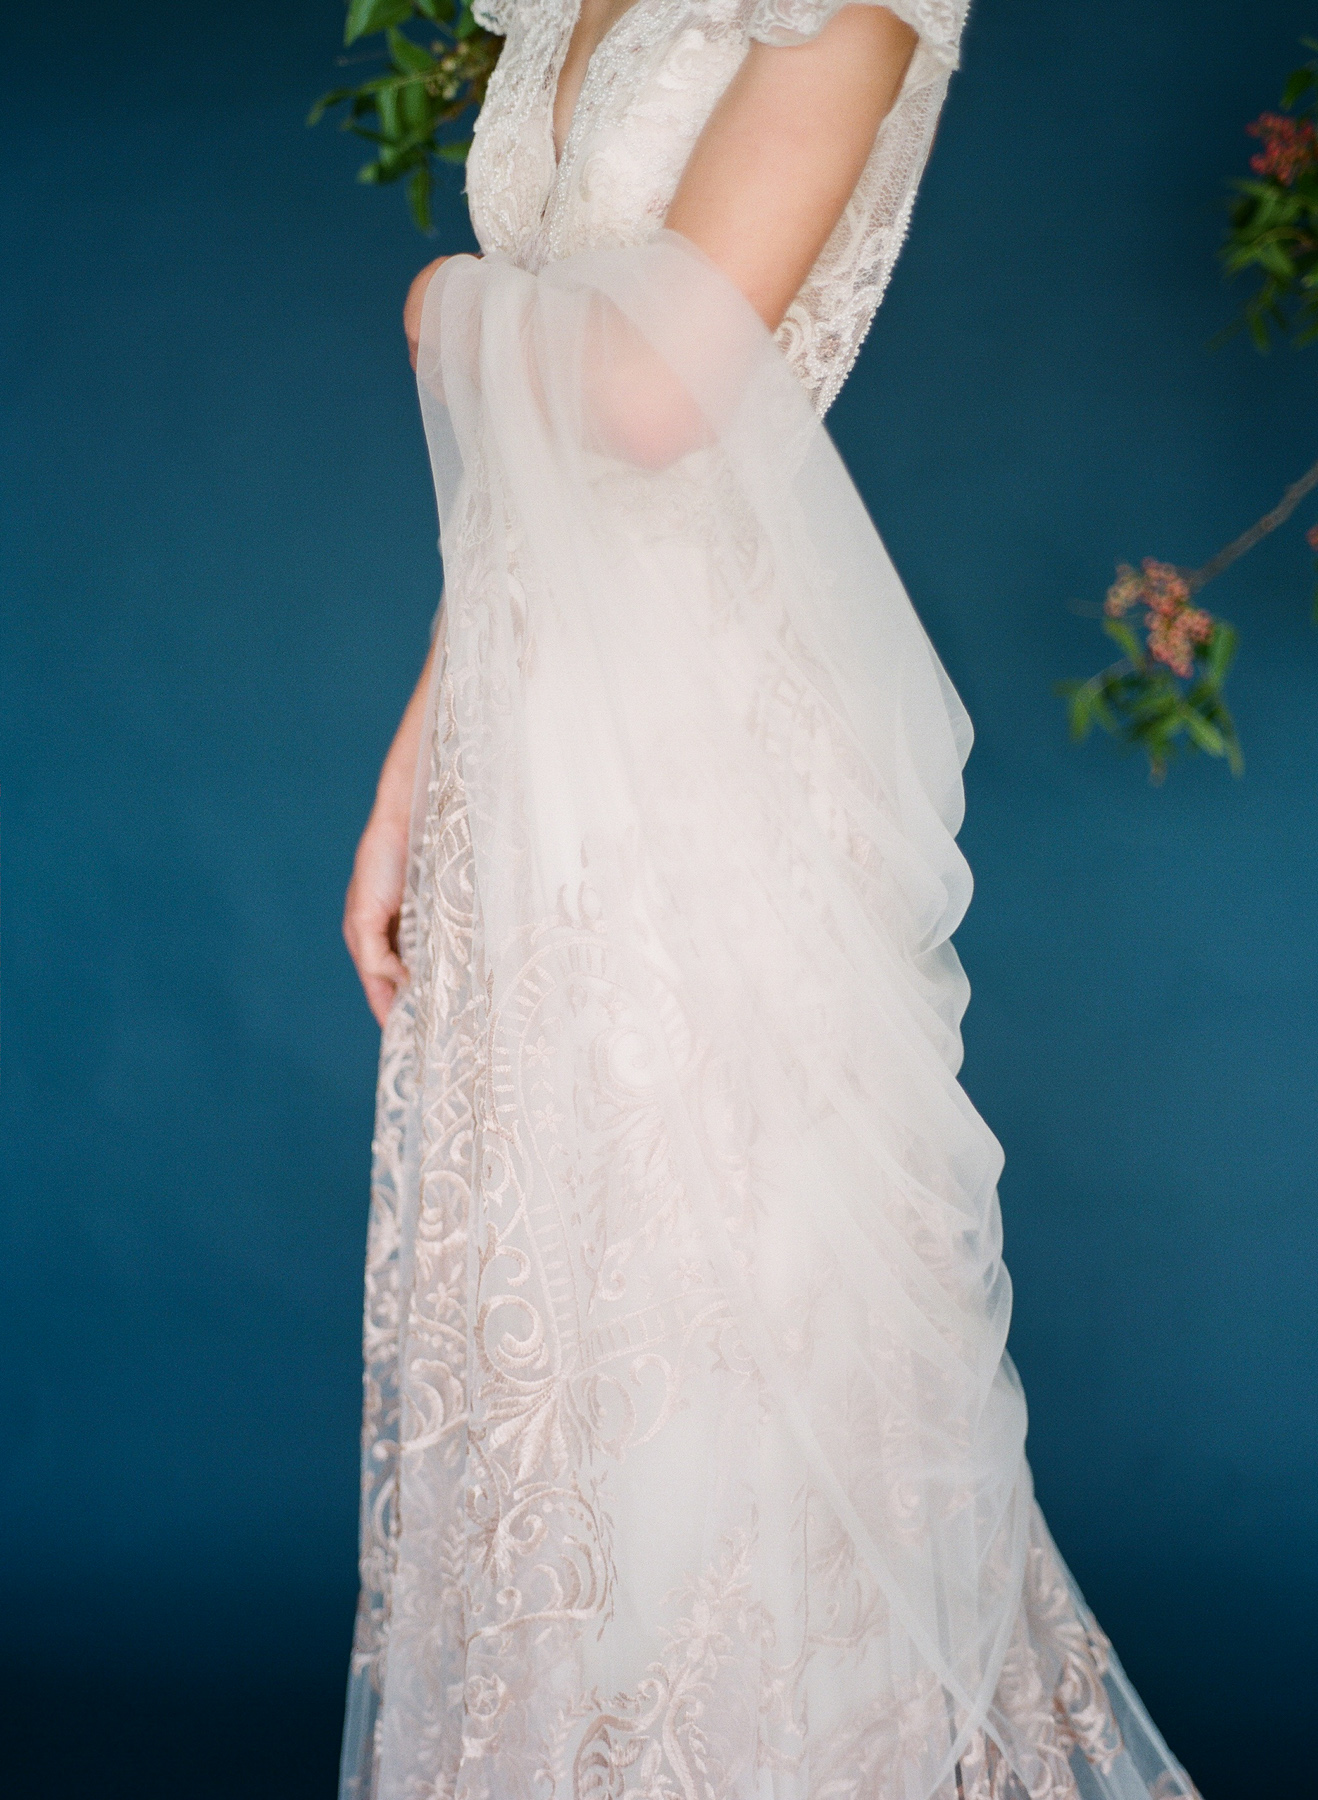 Type A Soceity San Francisco Claire Pettibone Theo Milo01.jpg